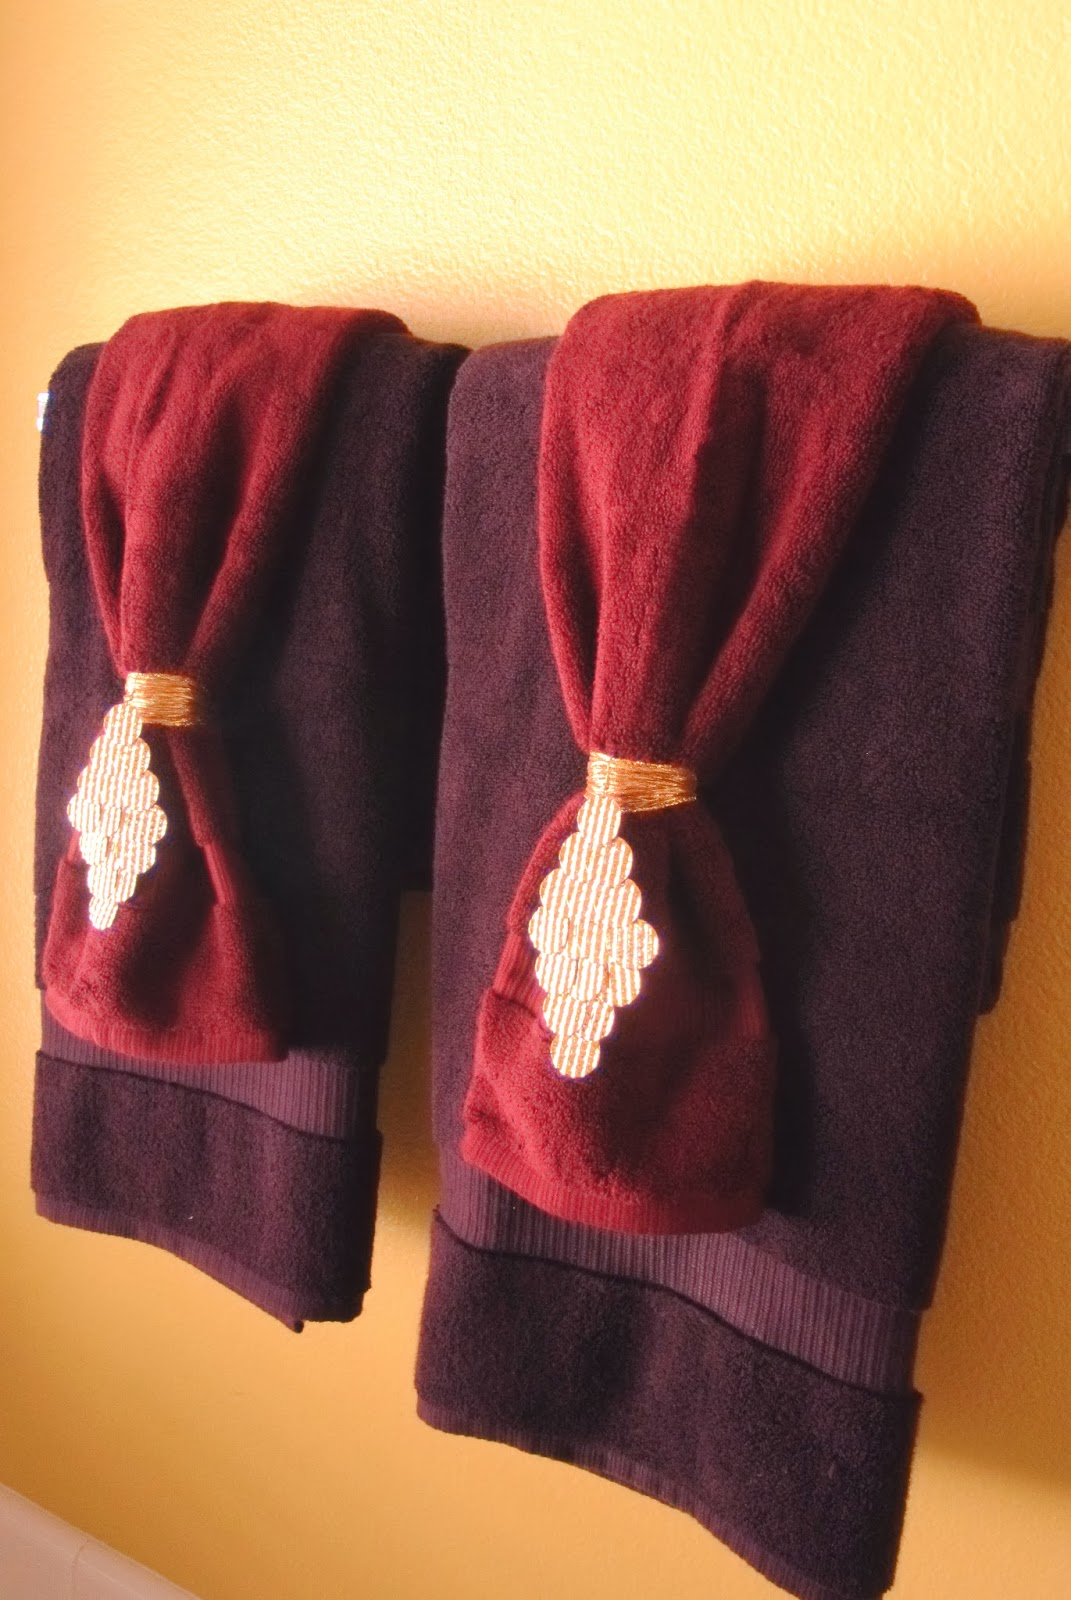 Decorative Bathroom Towels Best Home Ideas - Purple bath towels for small bathroom ideas